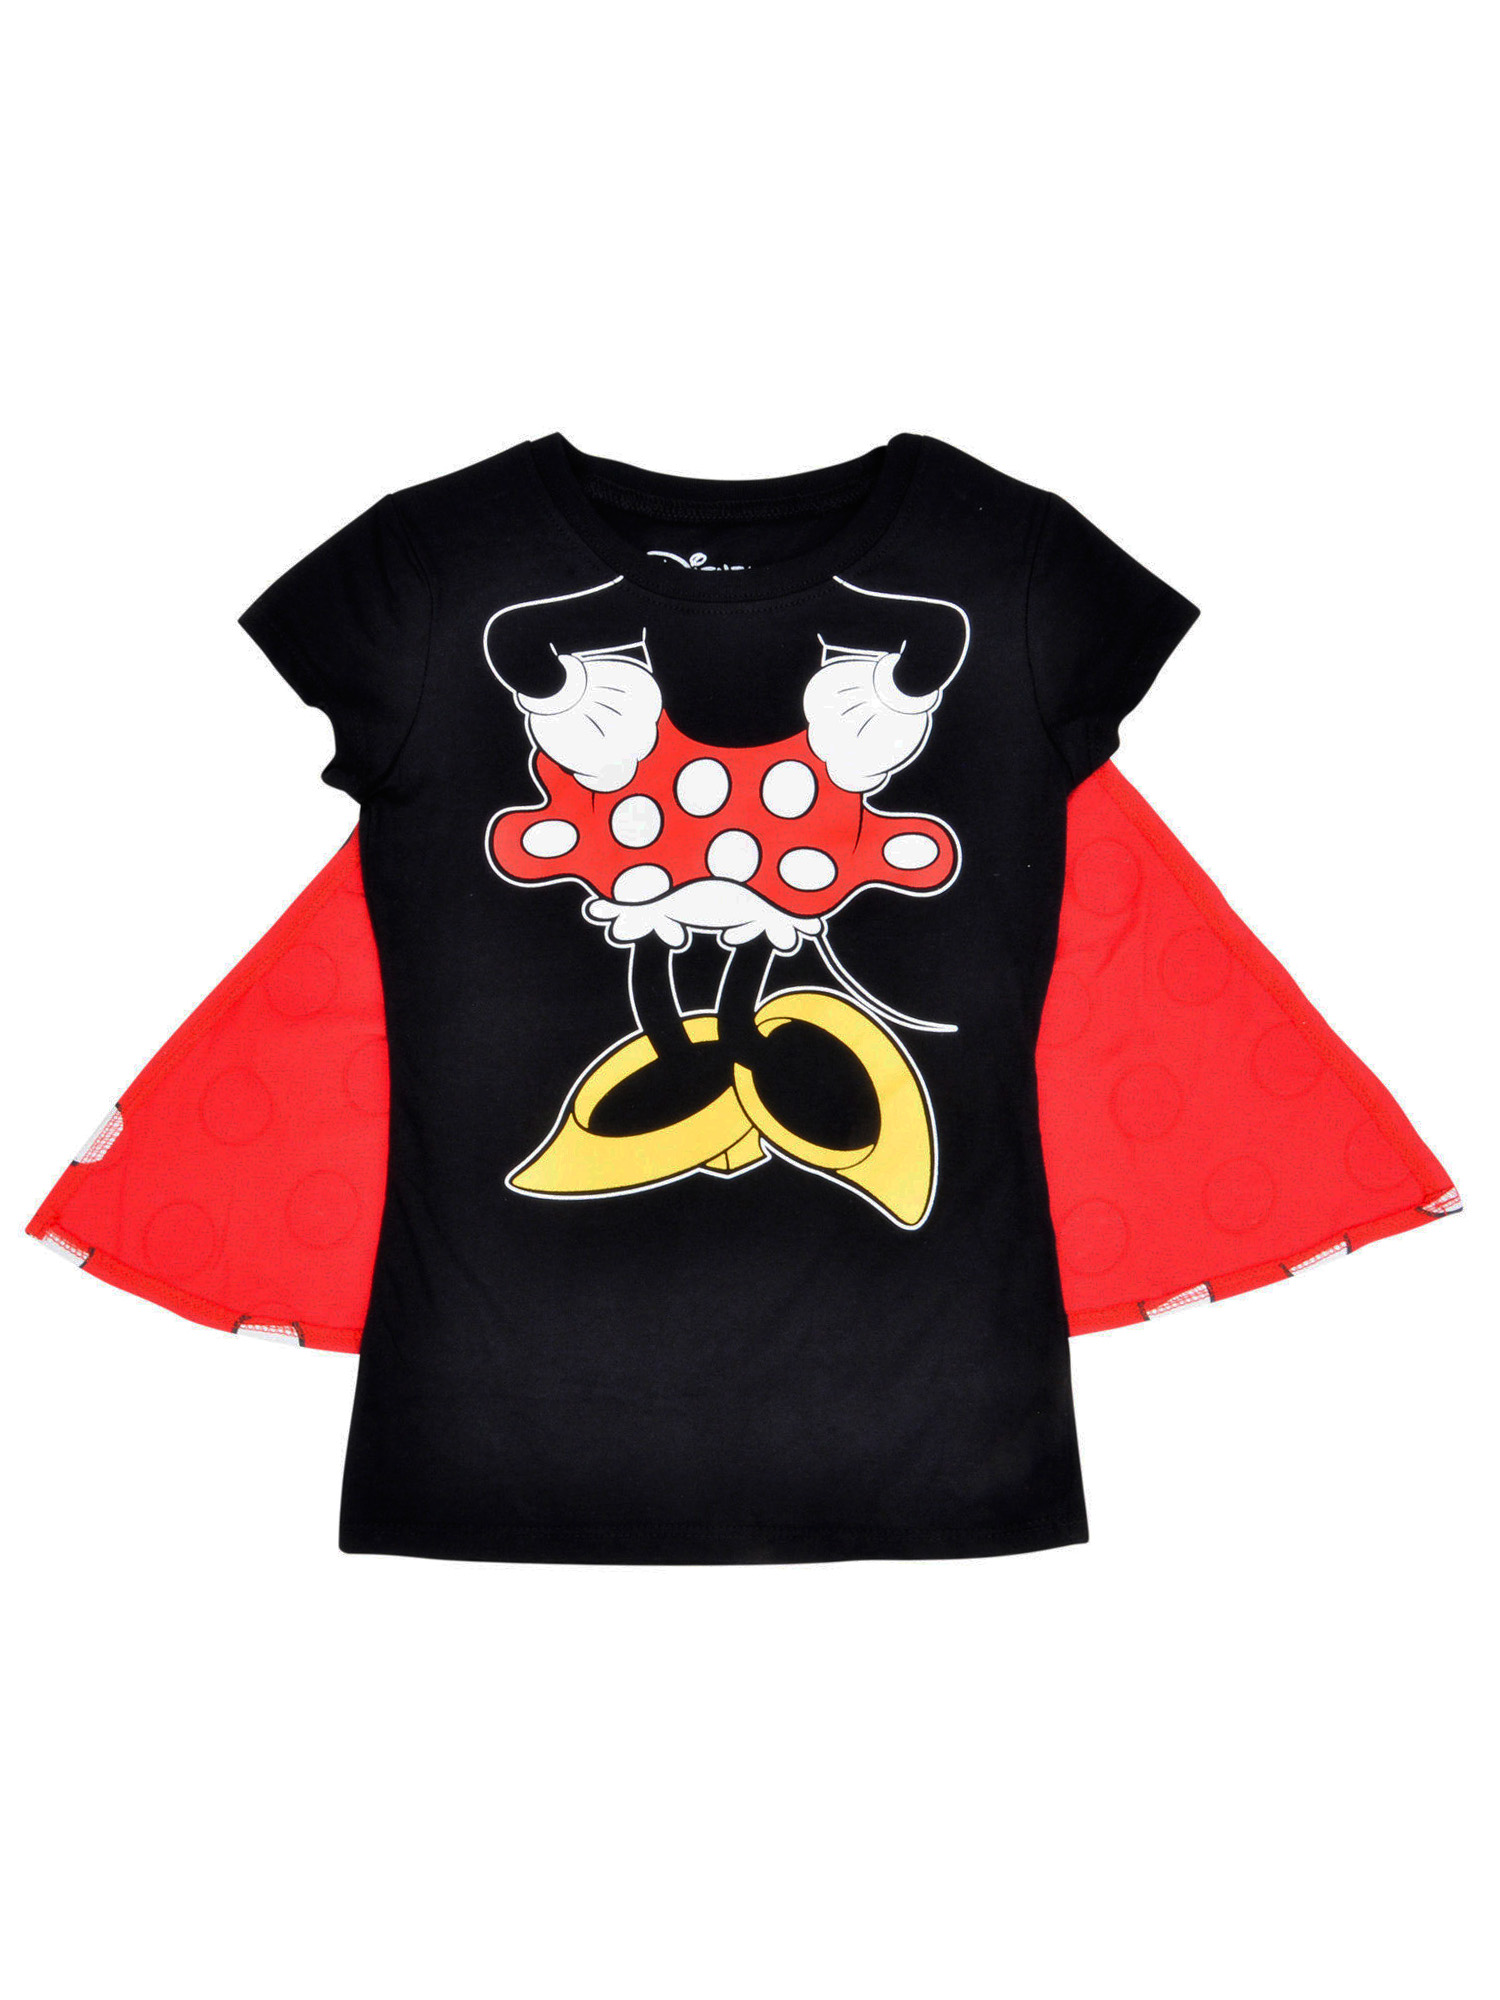 Girls Minnie Mouse Costume T-Shirt w/ Cape